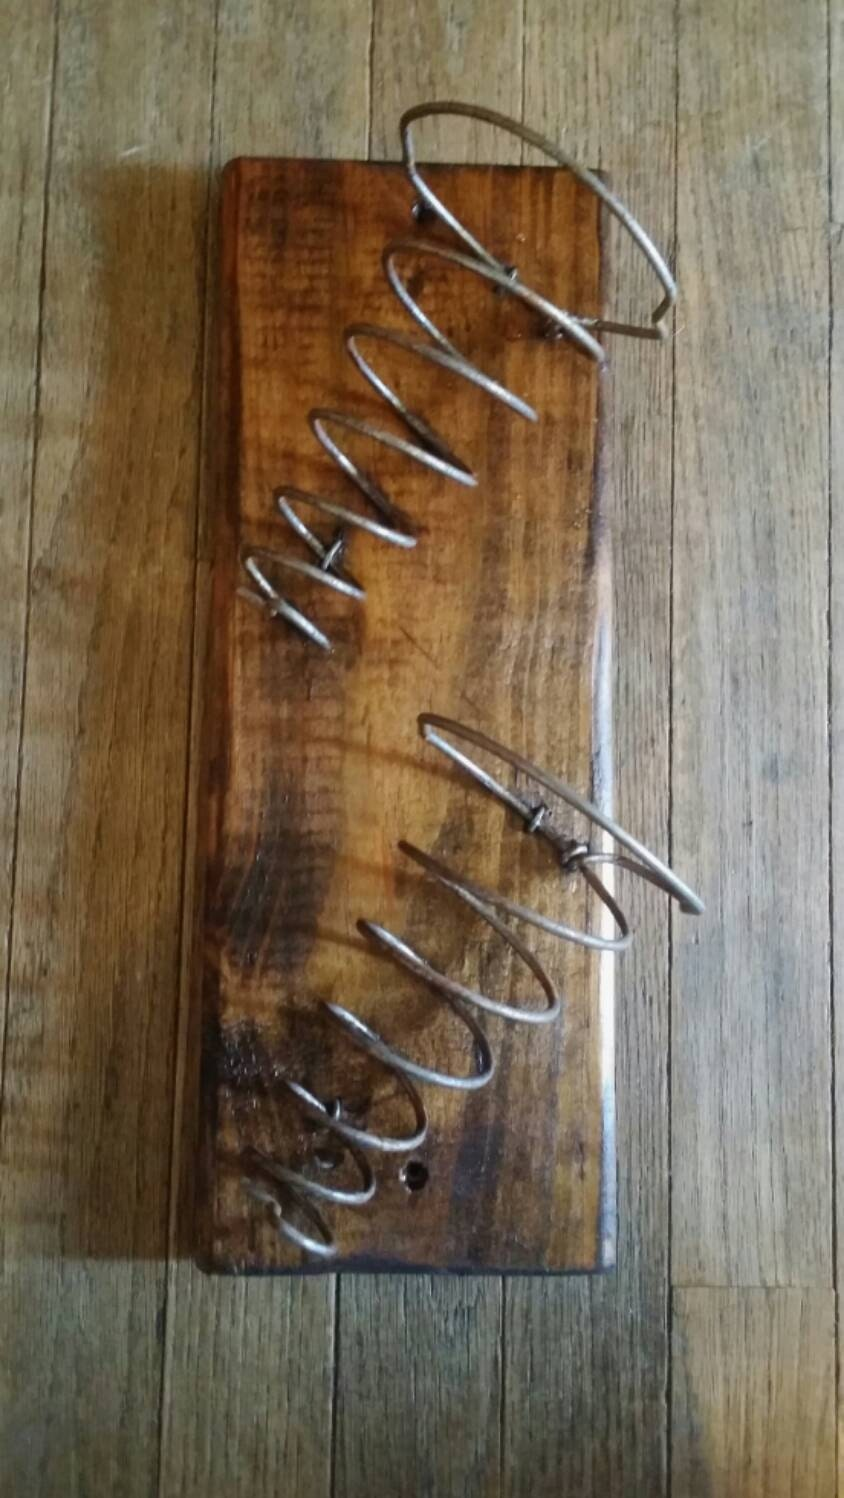 Bed Springs Wall Mounted Wine Rack With Bed Spring Holders